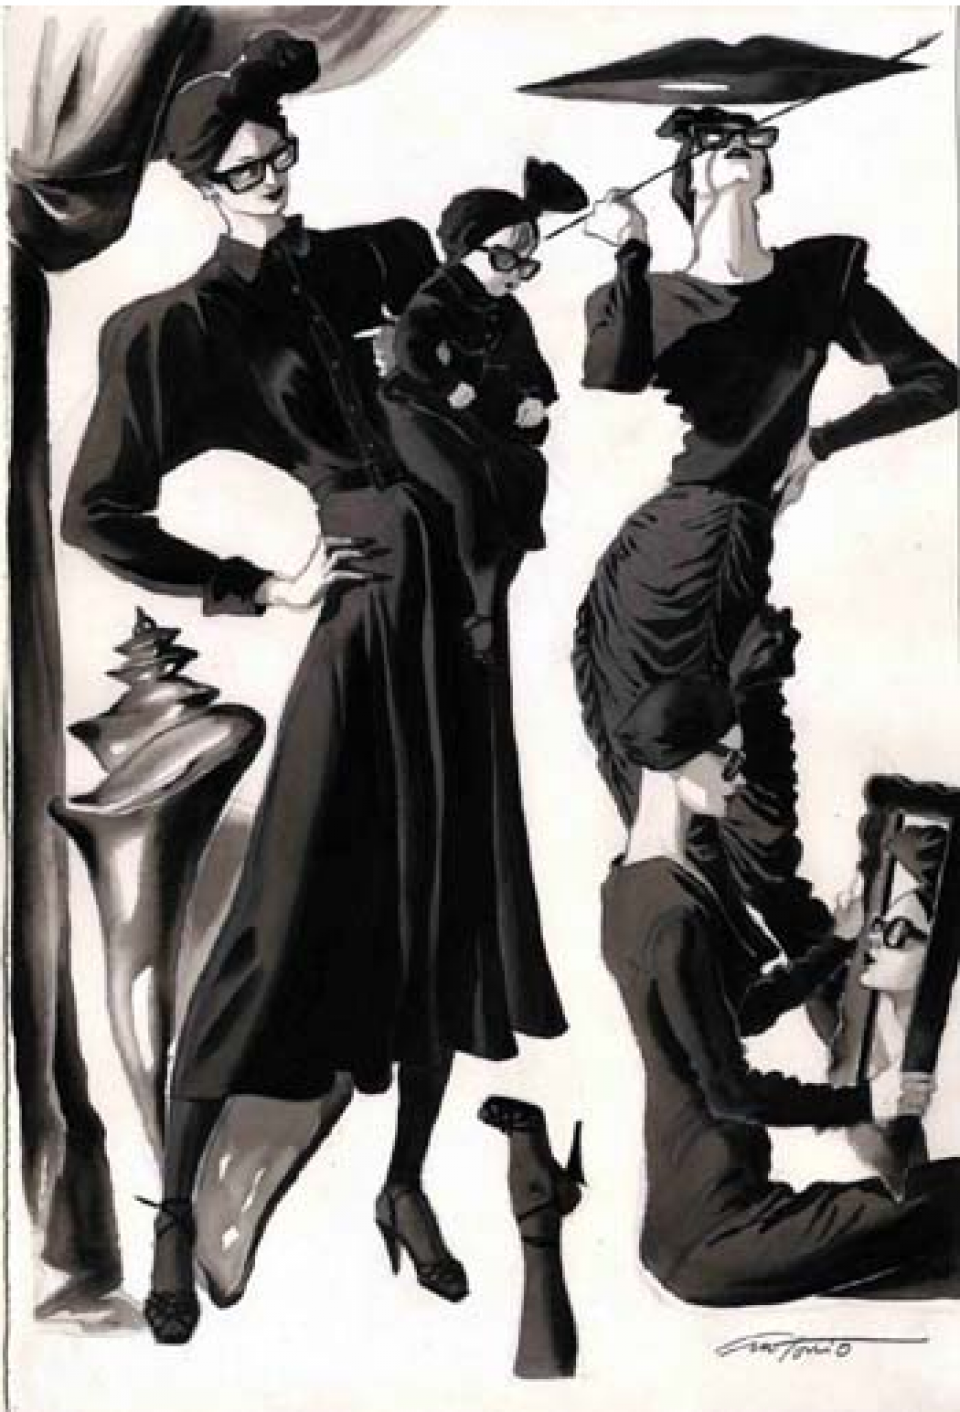 Antonio Lopez for Nordstrom, 1985